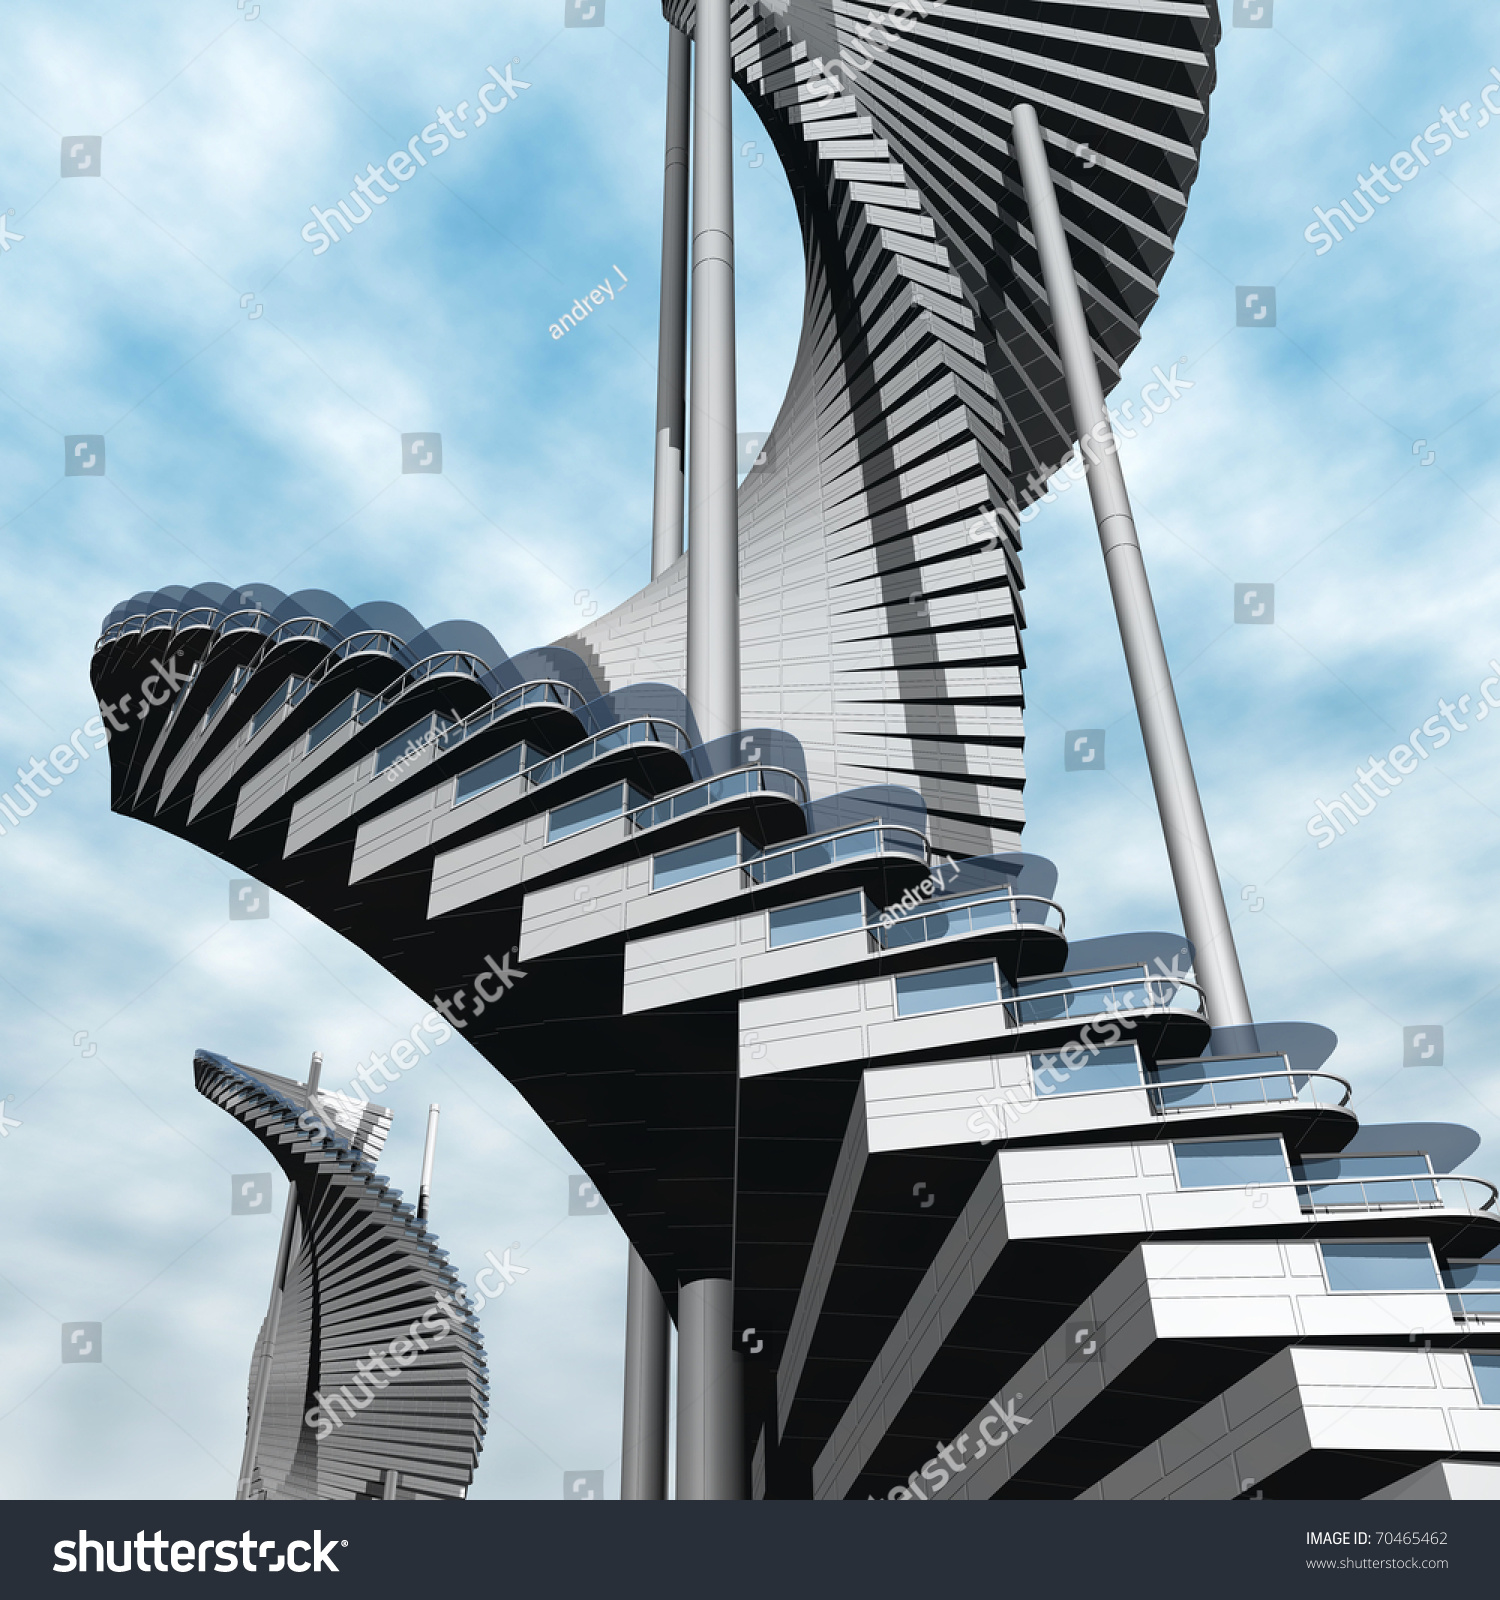 Future Architecture Stock Illustration 70465462 Shutterstock